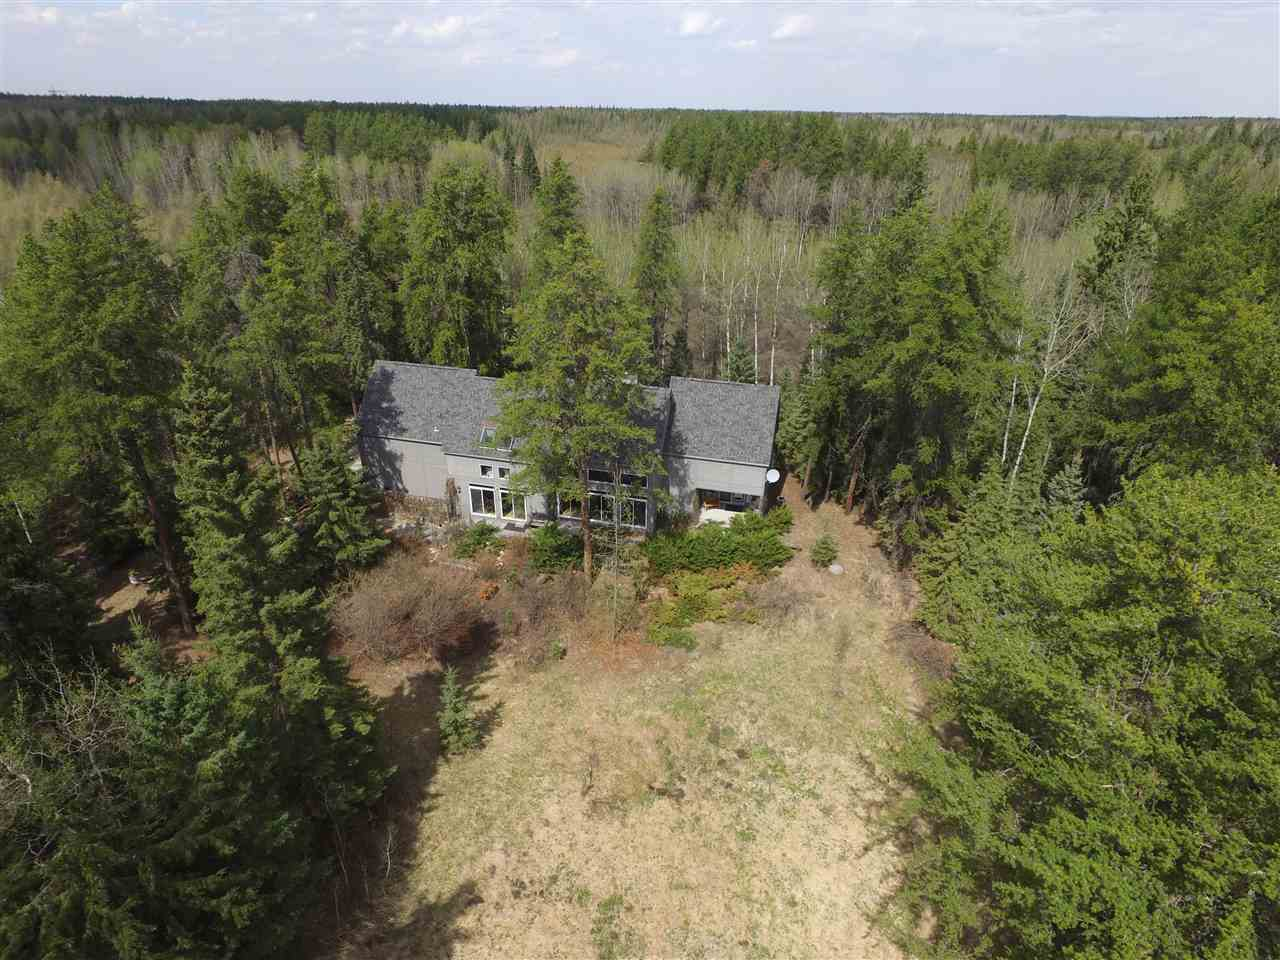 Photo 1: 3 26204 TWP RD 512 Road: Rural Parkland County House for sale : MLS(r) # E4061055